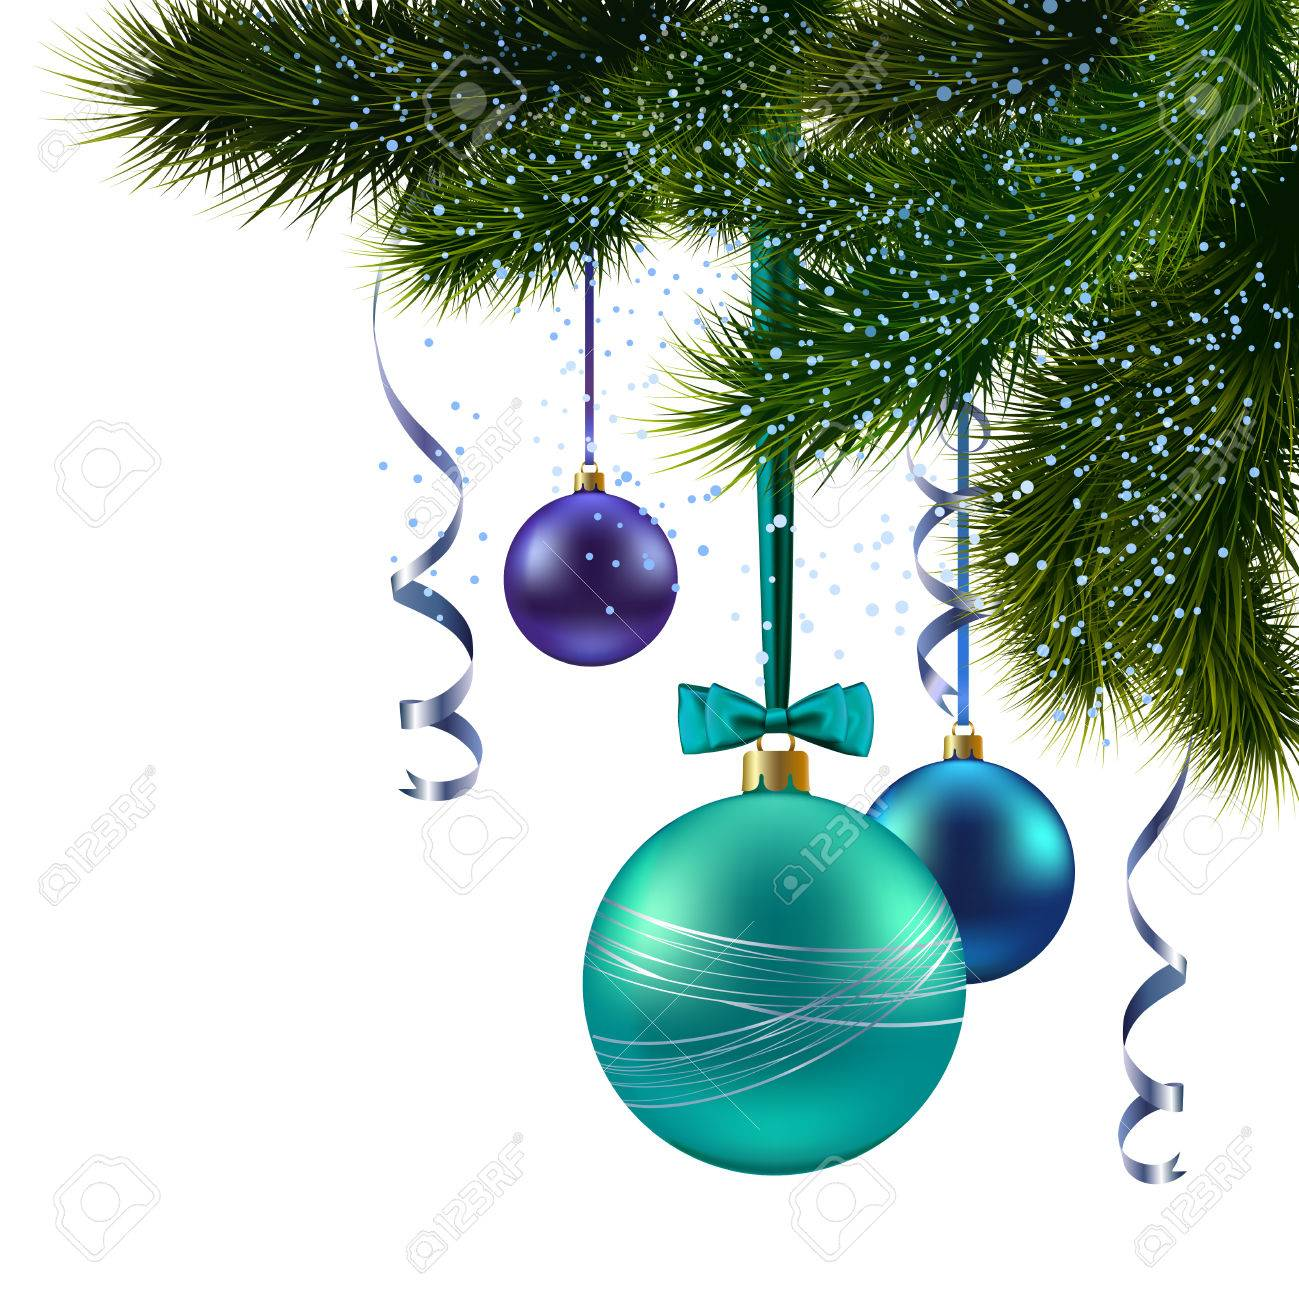 Pine Branches For Decoration Christmas Pine Tree Branch With Decoration Balls Background